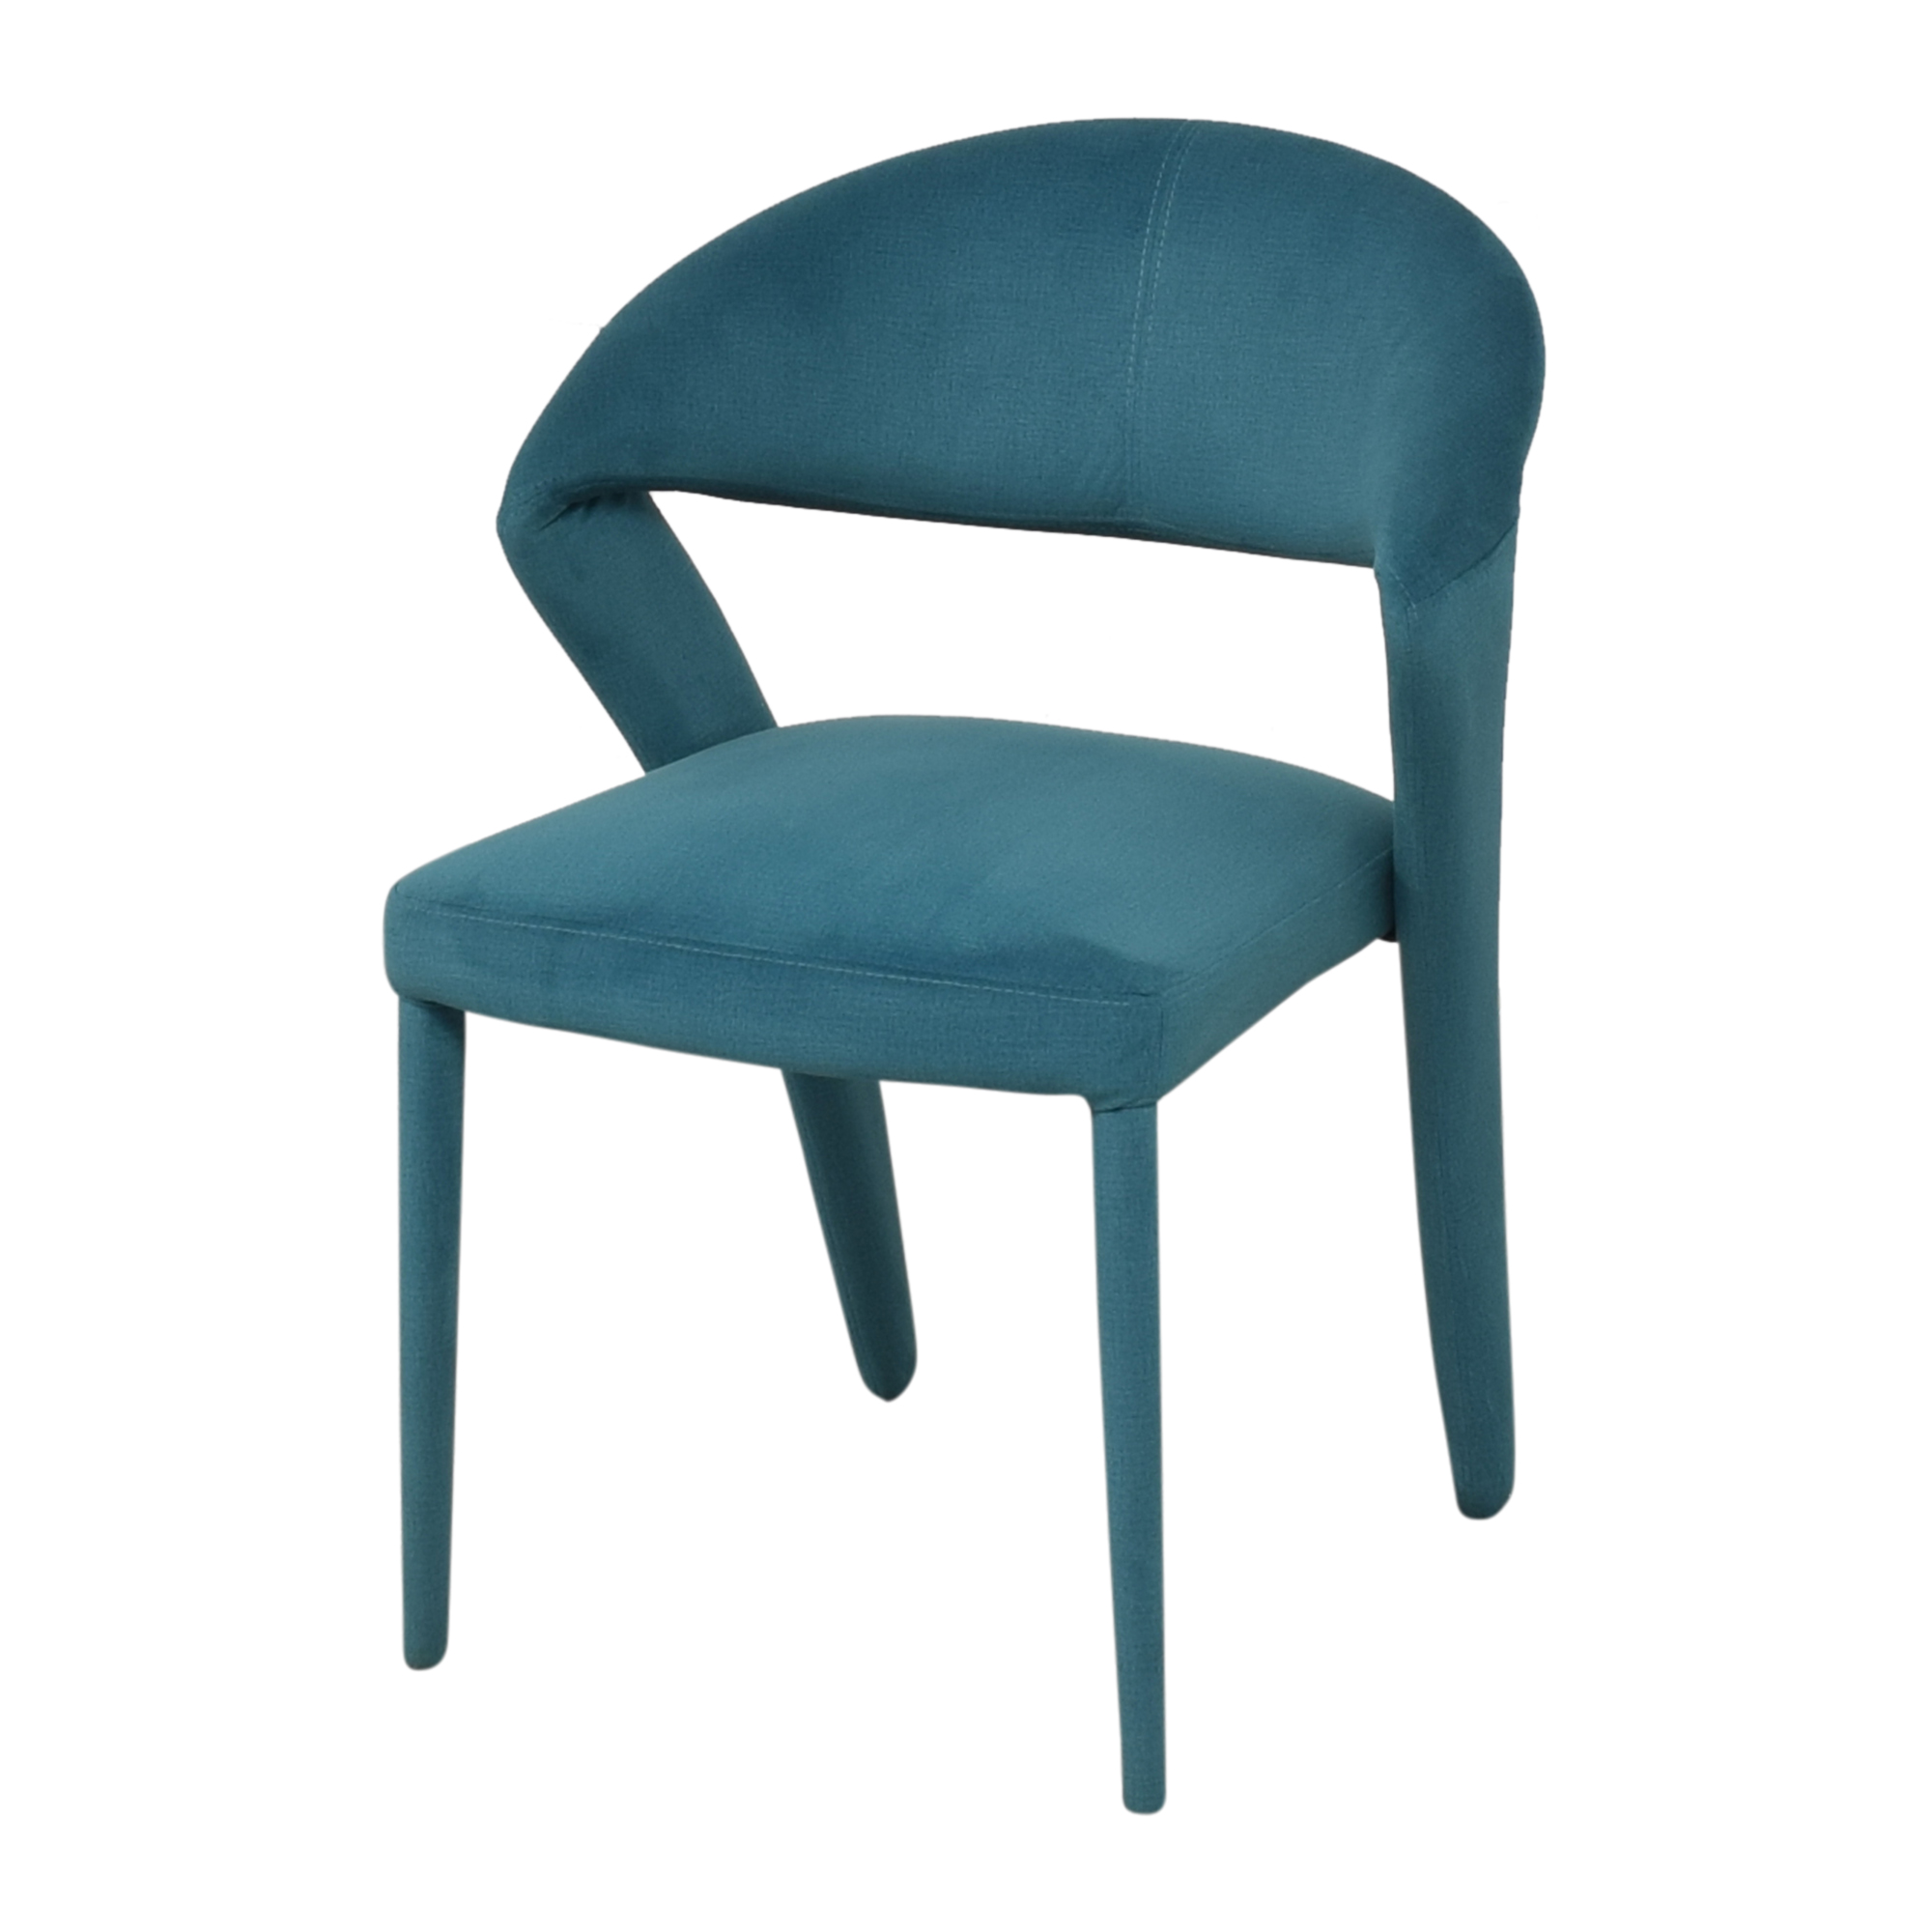 Moe's Home Collection Moe's Home Collection Lennox Dining Chairs price